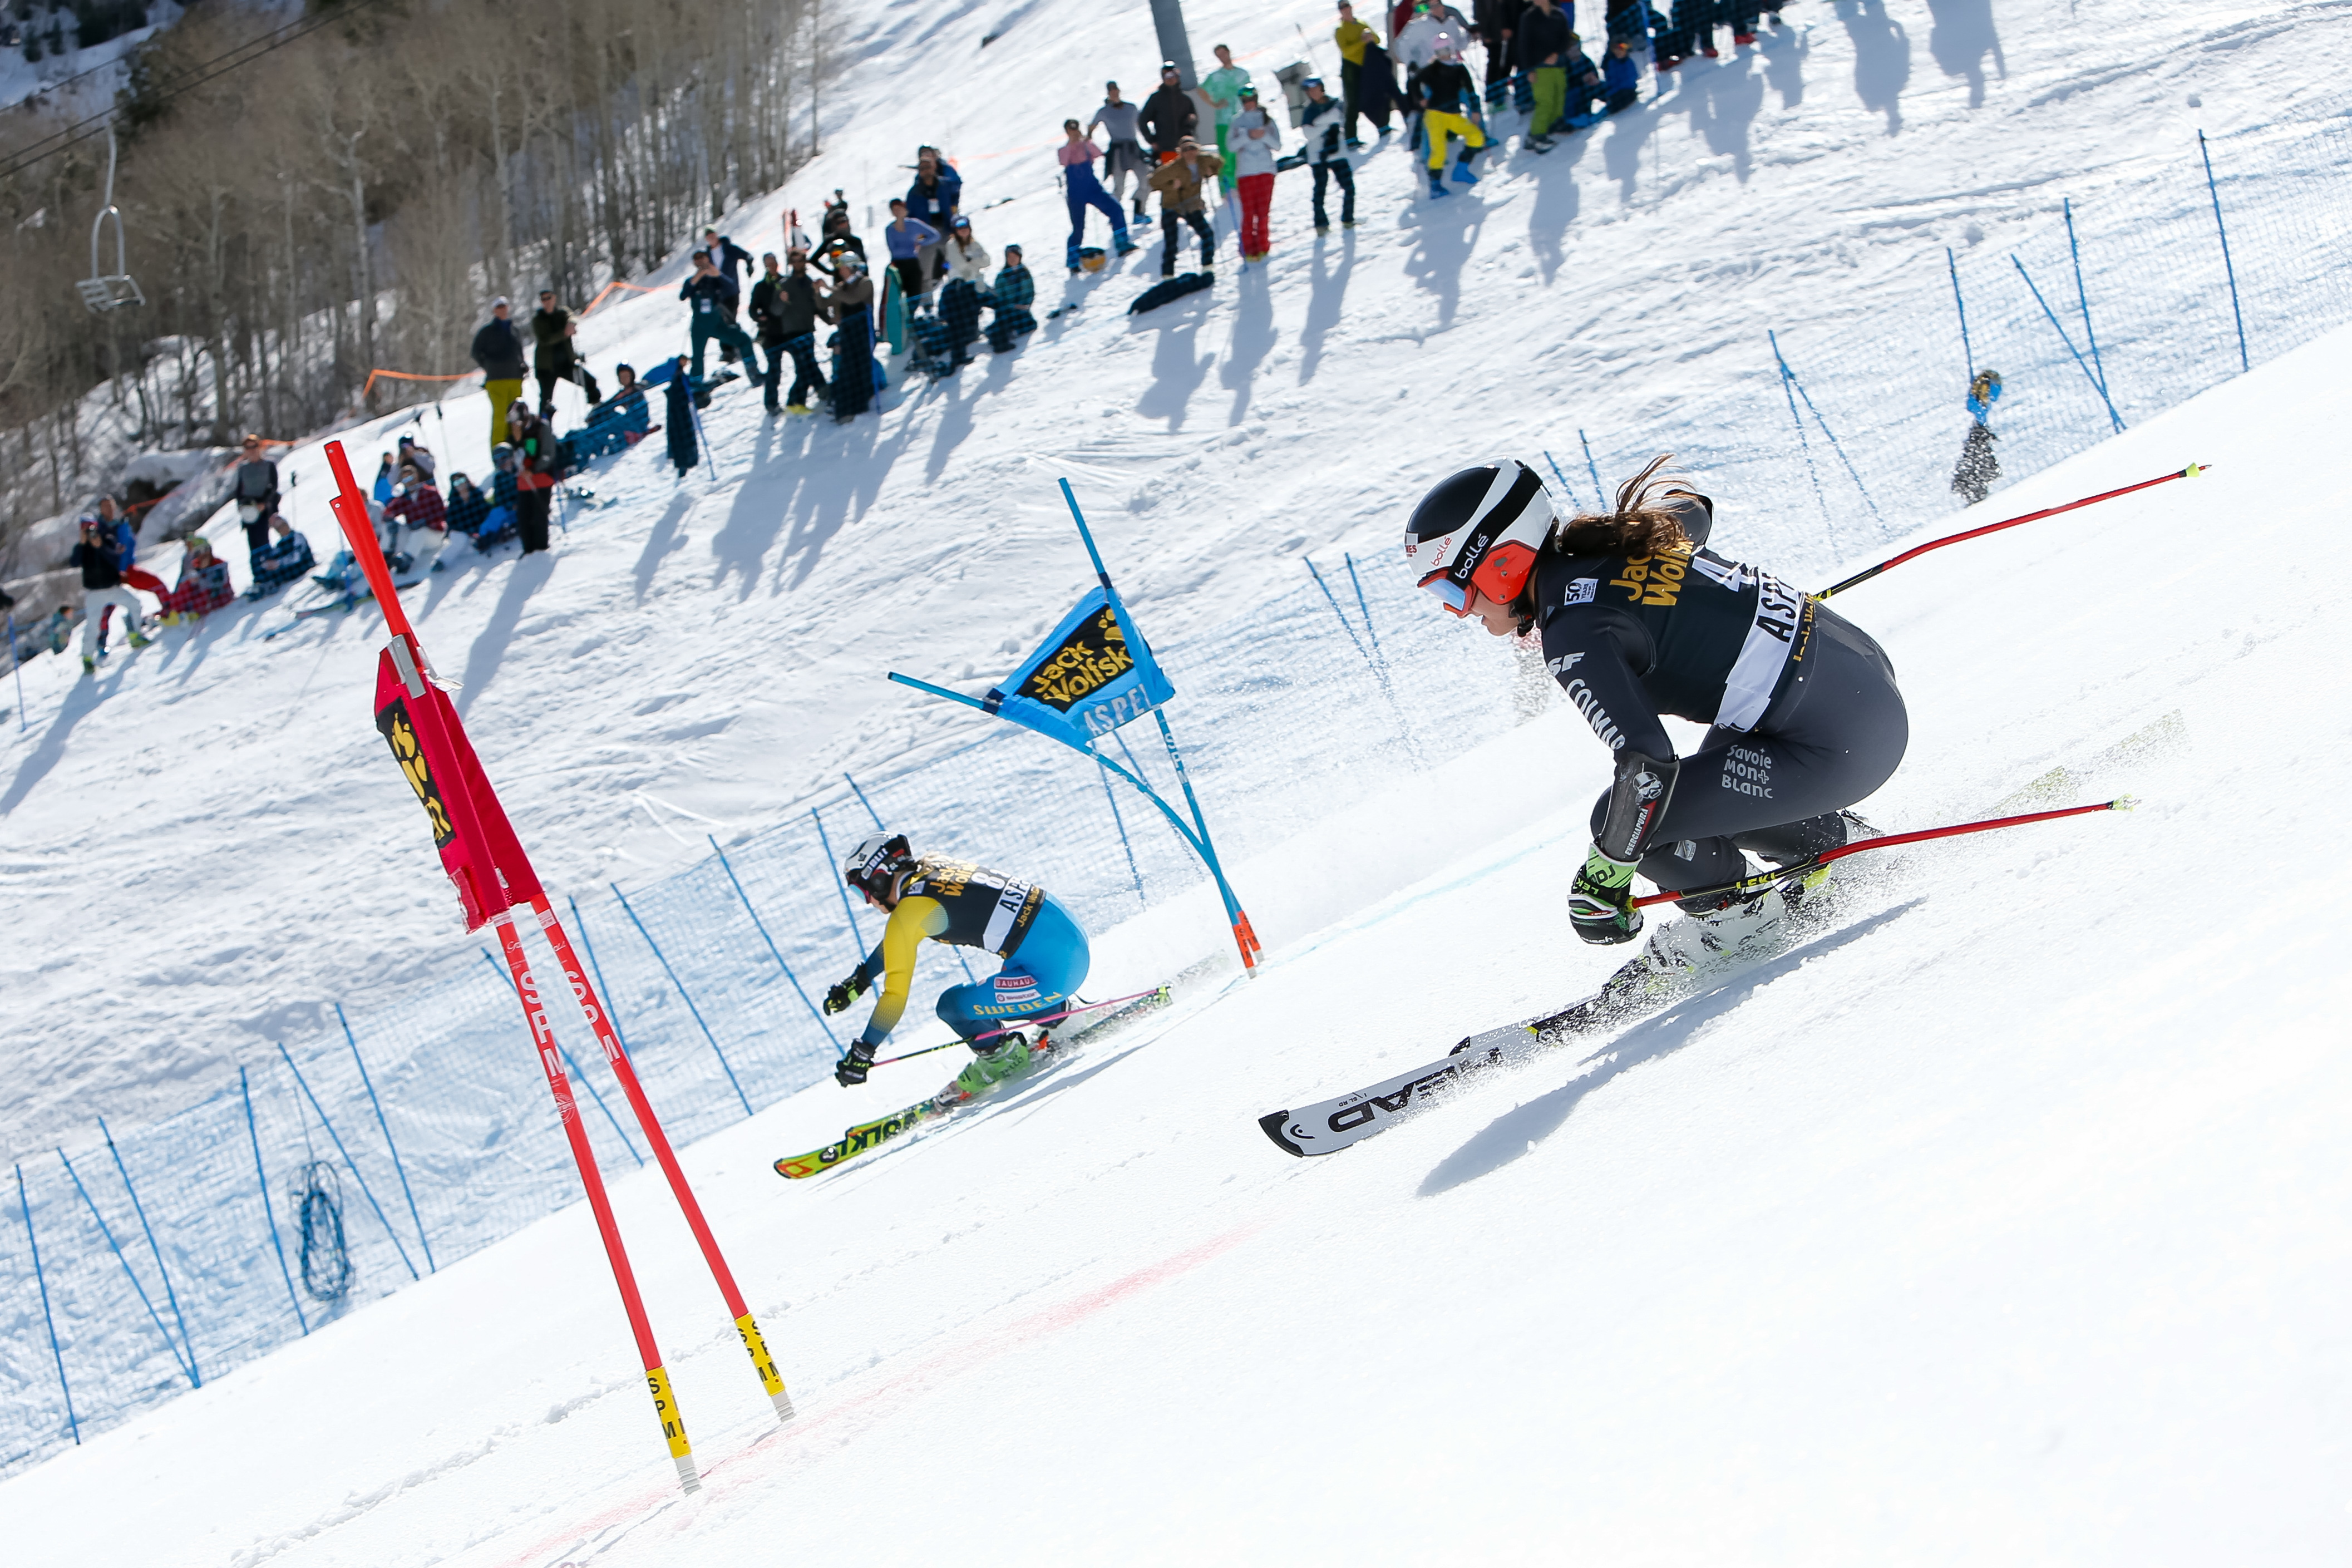 Emelie Wikstroem of Sweden, Coralie Frasse Sombet of France compete during the Audi FIS Alpine Ski World Cup Finals Nation Team Event on March 17, 2017 in Aspen, Colorado. Alexis Boichard/Agence Zoom—Getty Images